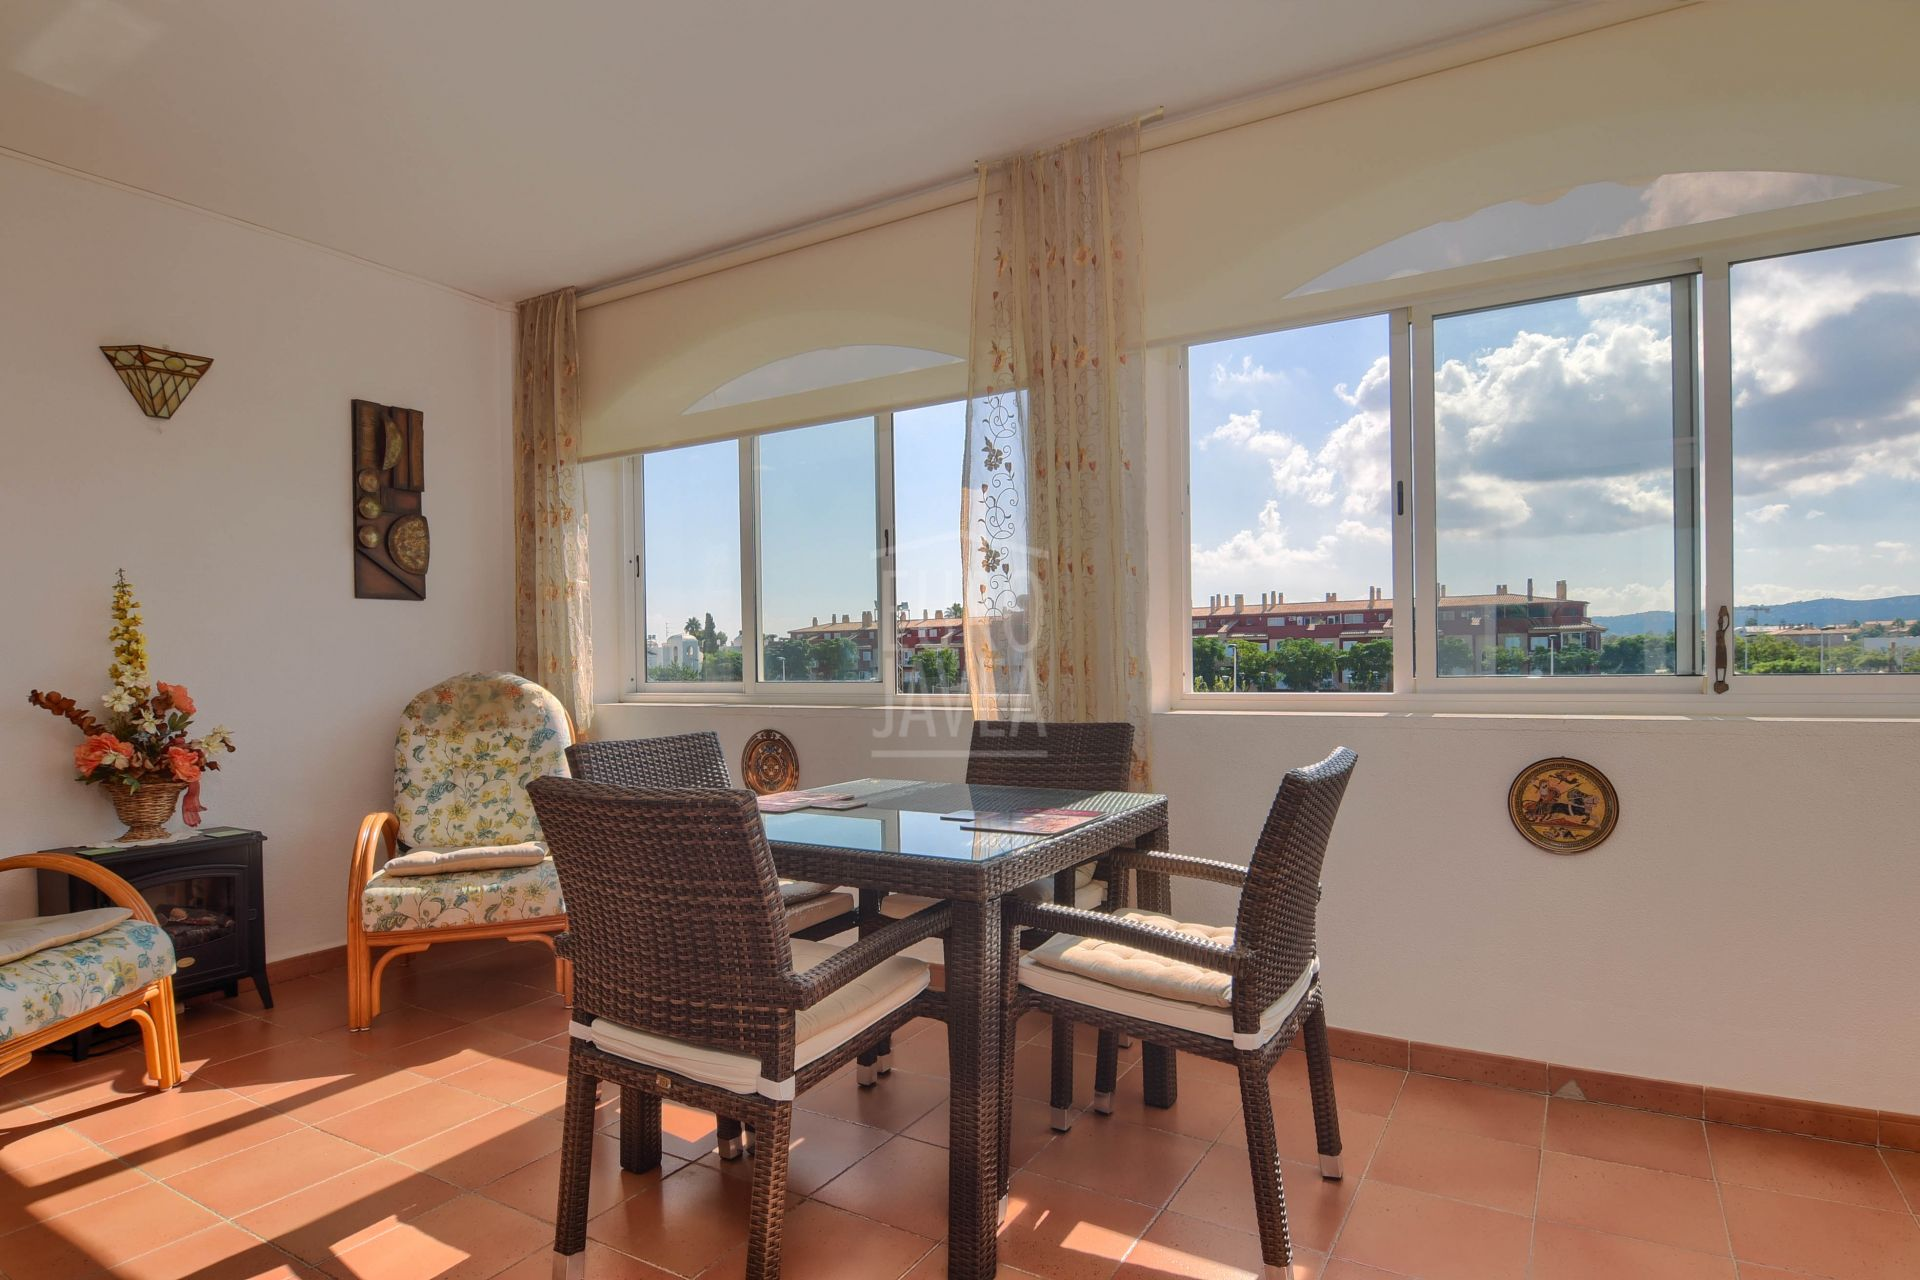 Apartment for sale in exclusive in the Port of Jávea , walking distance to the sea .